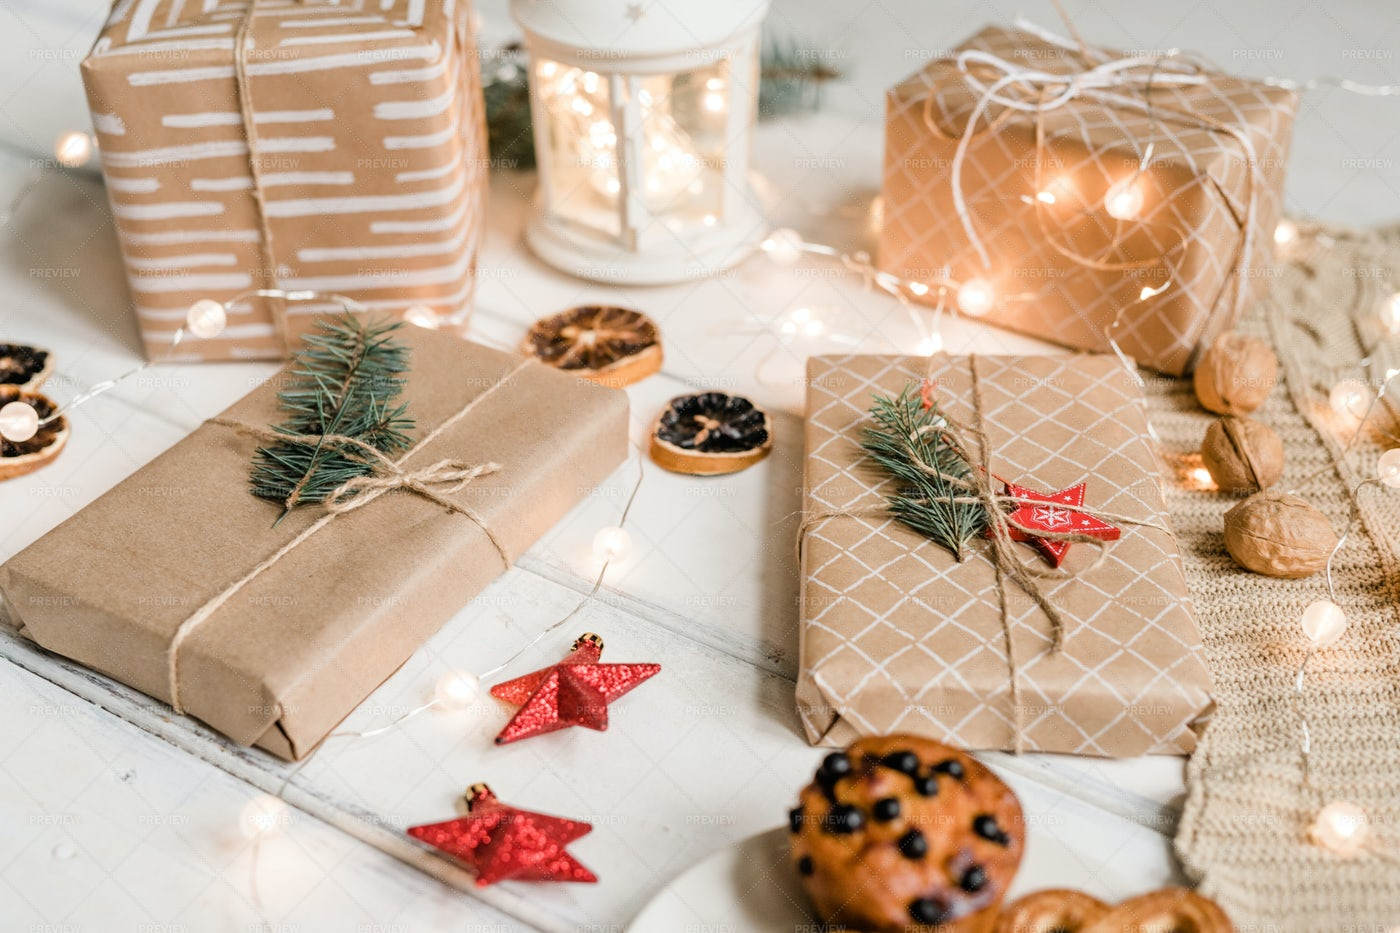 Packed Gifts Among Decorative Red...: Stock Photos